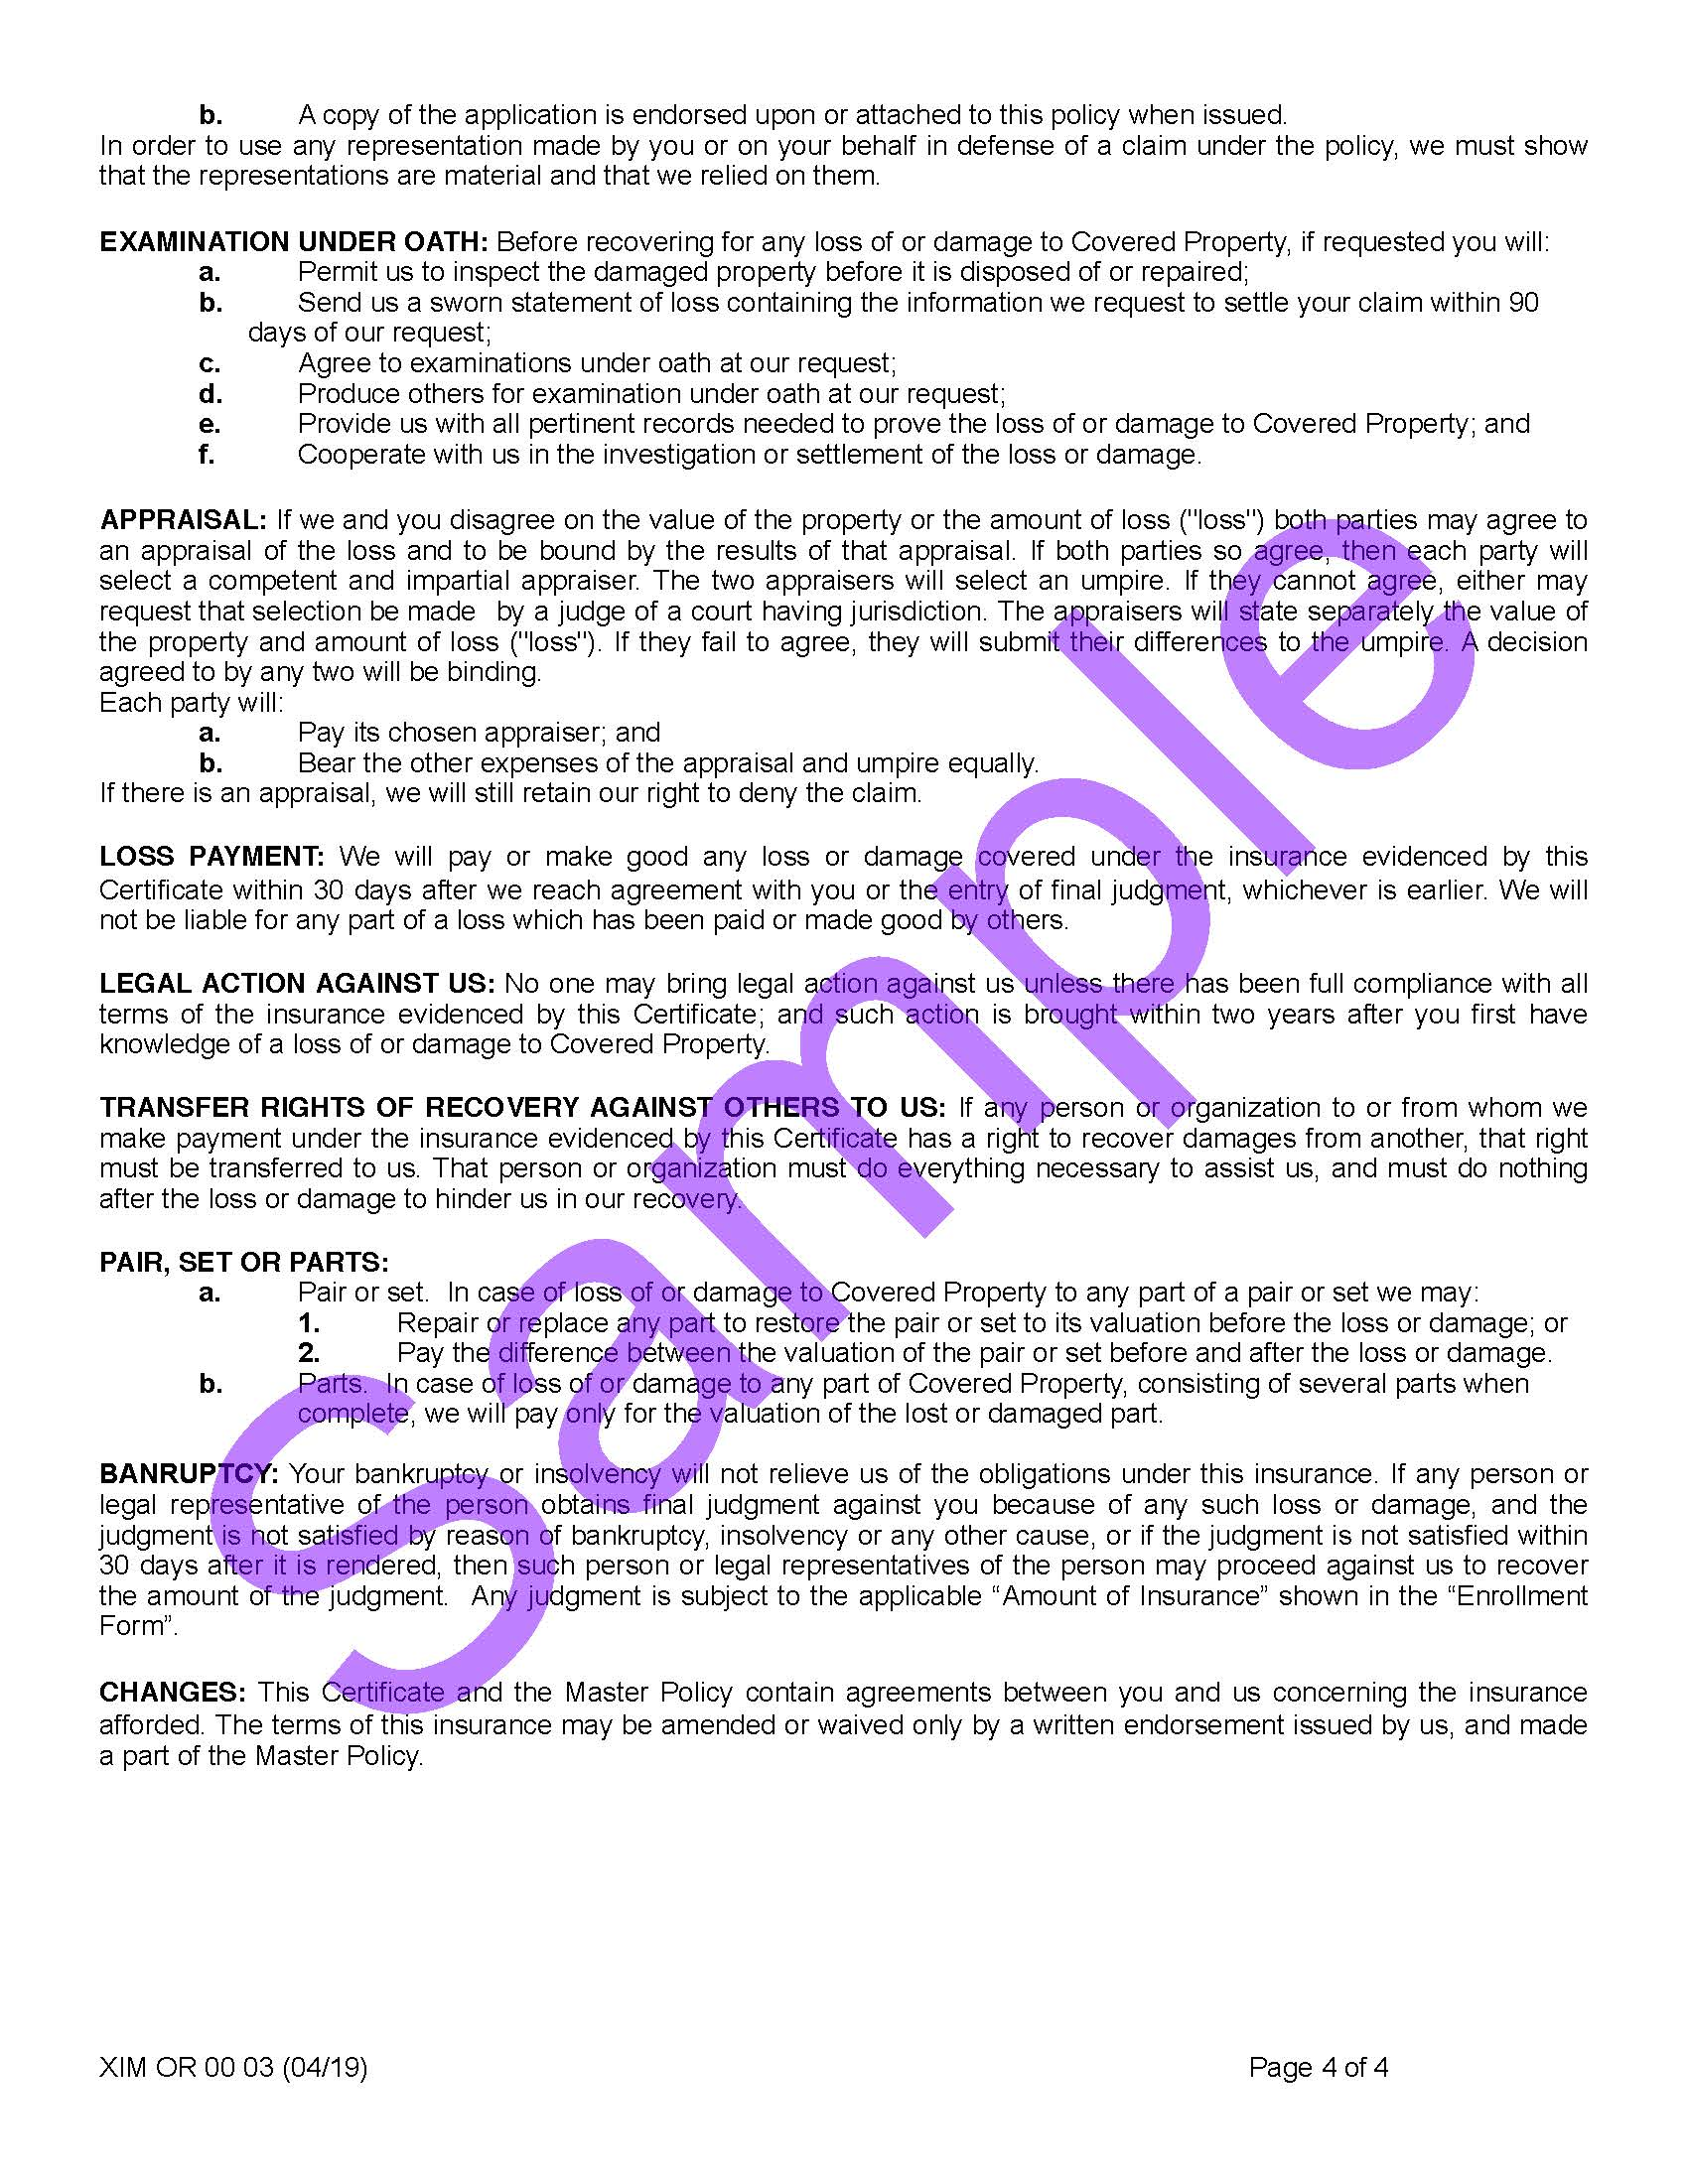 XIM OR 00 03 04 19 Oregon Certificate of InsuranceSample_Page_4.jpg